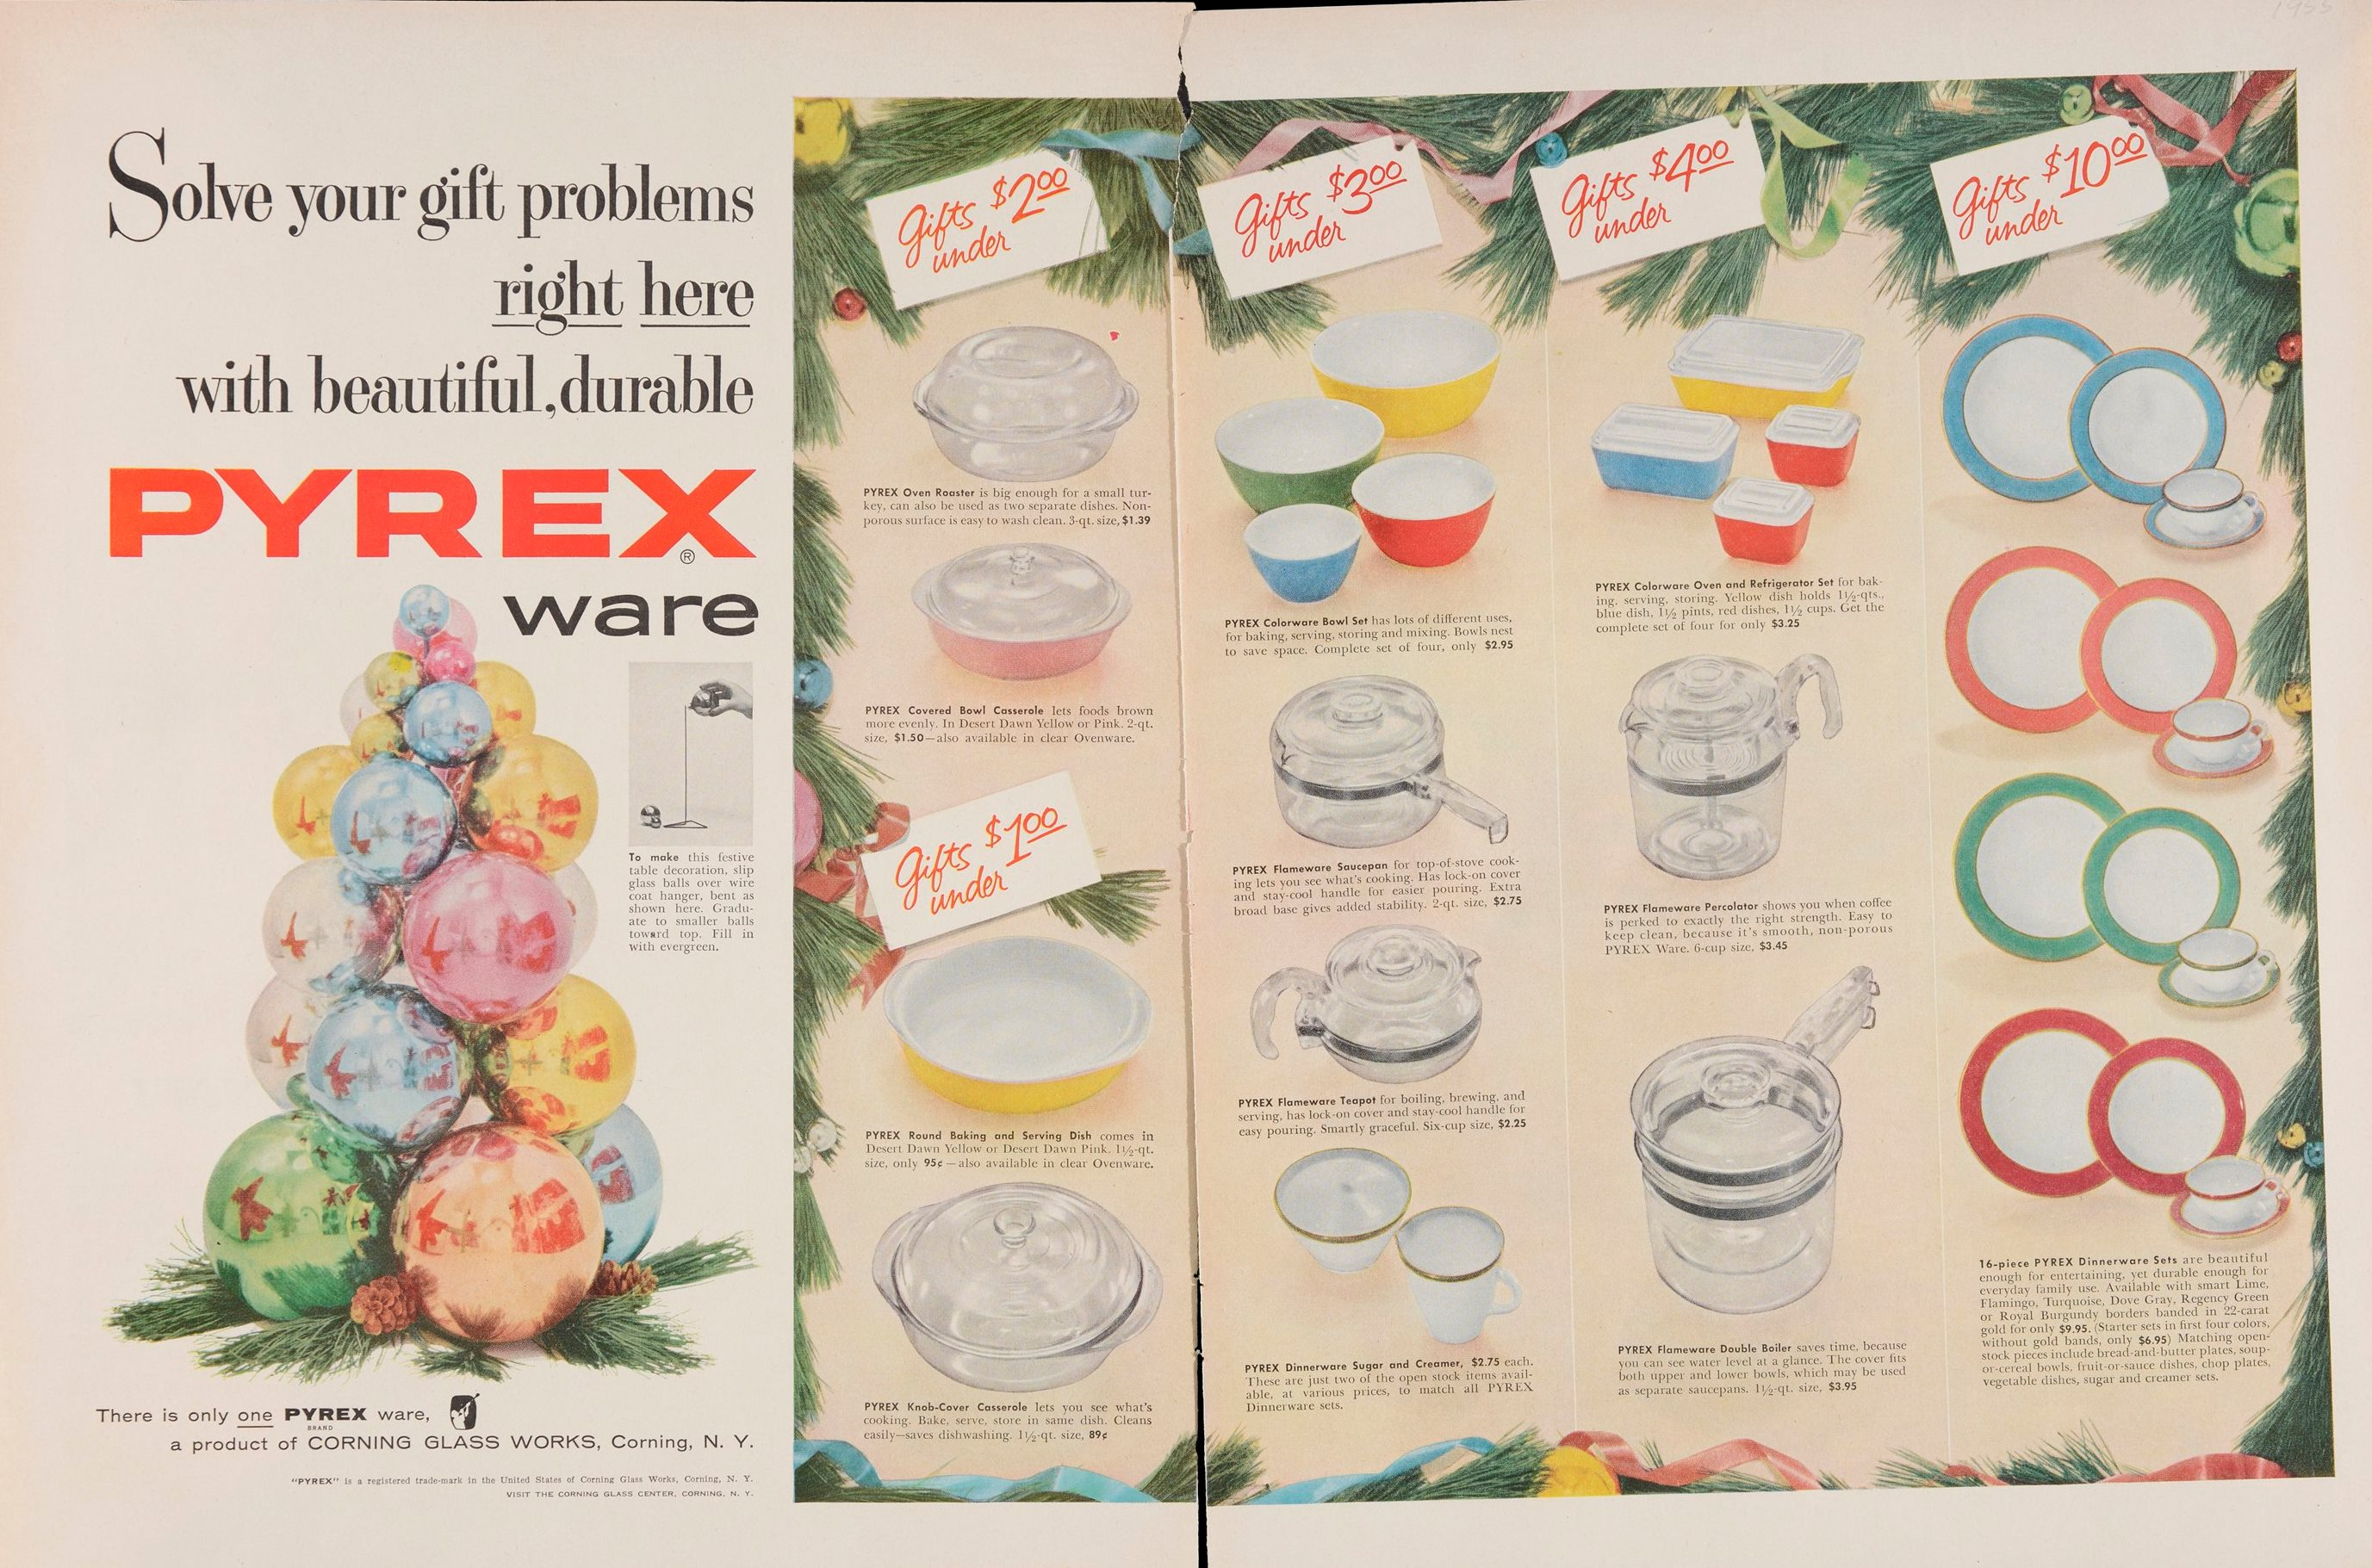 """""""Solve your gift problems right here with beautiful, durable Pyrex ware."""" Advertisement from Corning Glass Works, published in unknown periodical, 1955. CMGL 140001."""